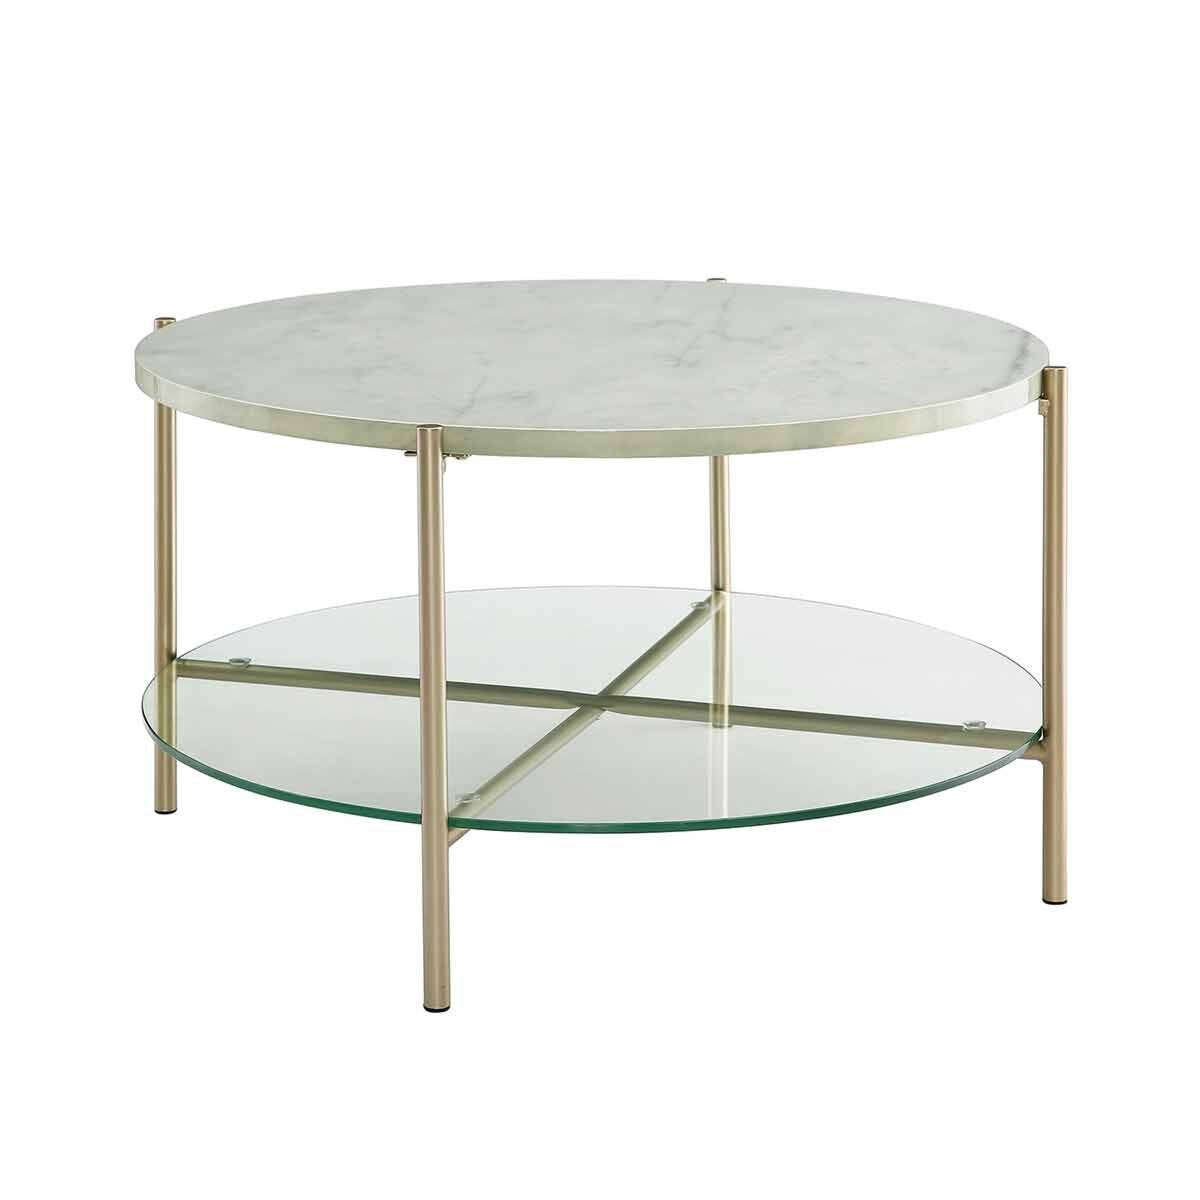 Malabo Modern Round Coffee Table with Glass Shelf White Marble